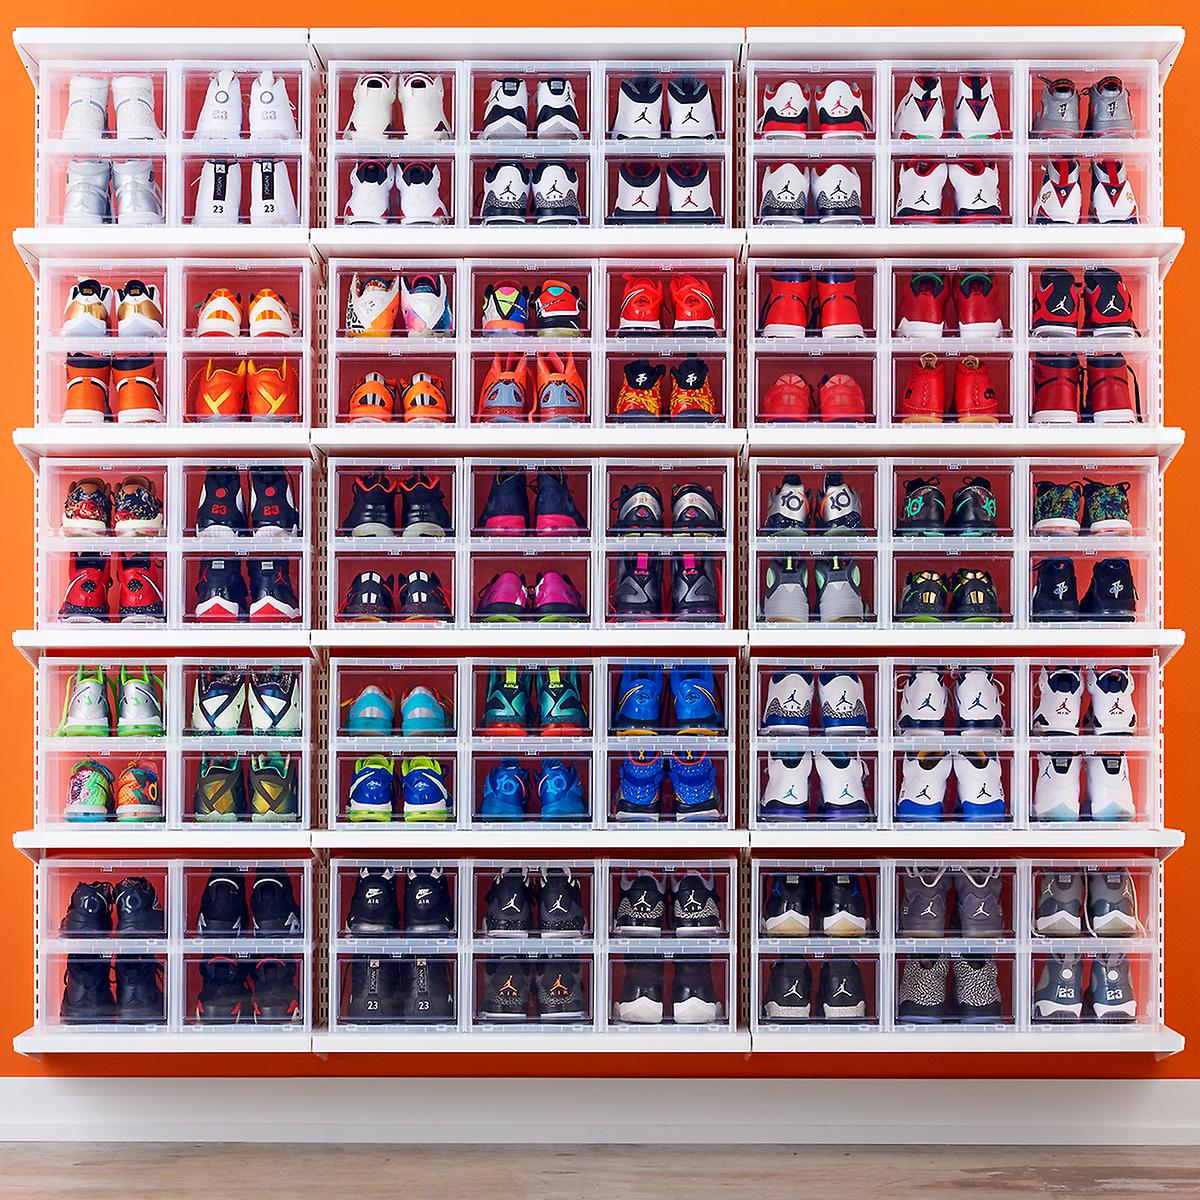 On Sale: 20% OFF Container Store Drop Front Sneaker Boxes   BUY HERE:  http:// bit.ly/2MowxjH  &nbsp;  <br>http://pic.twitter.com/3DF4EuSpOk